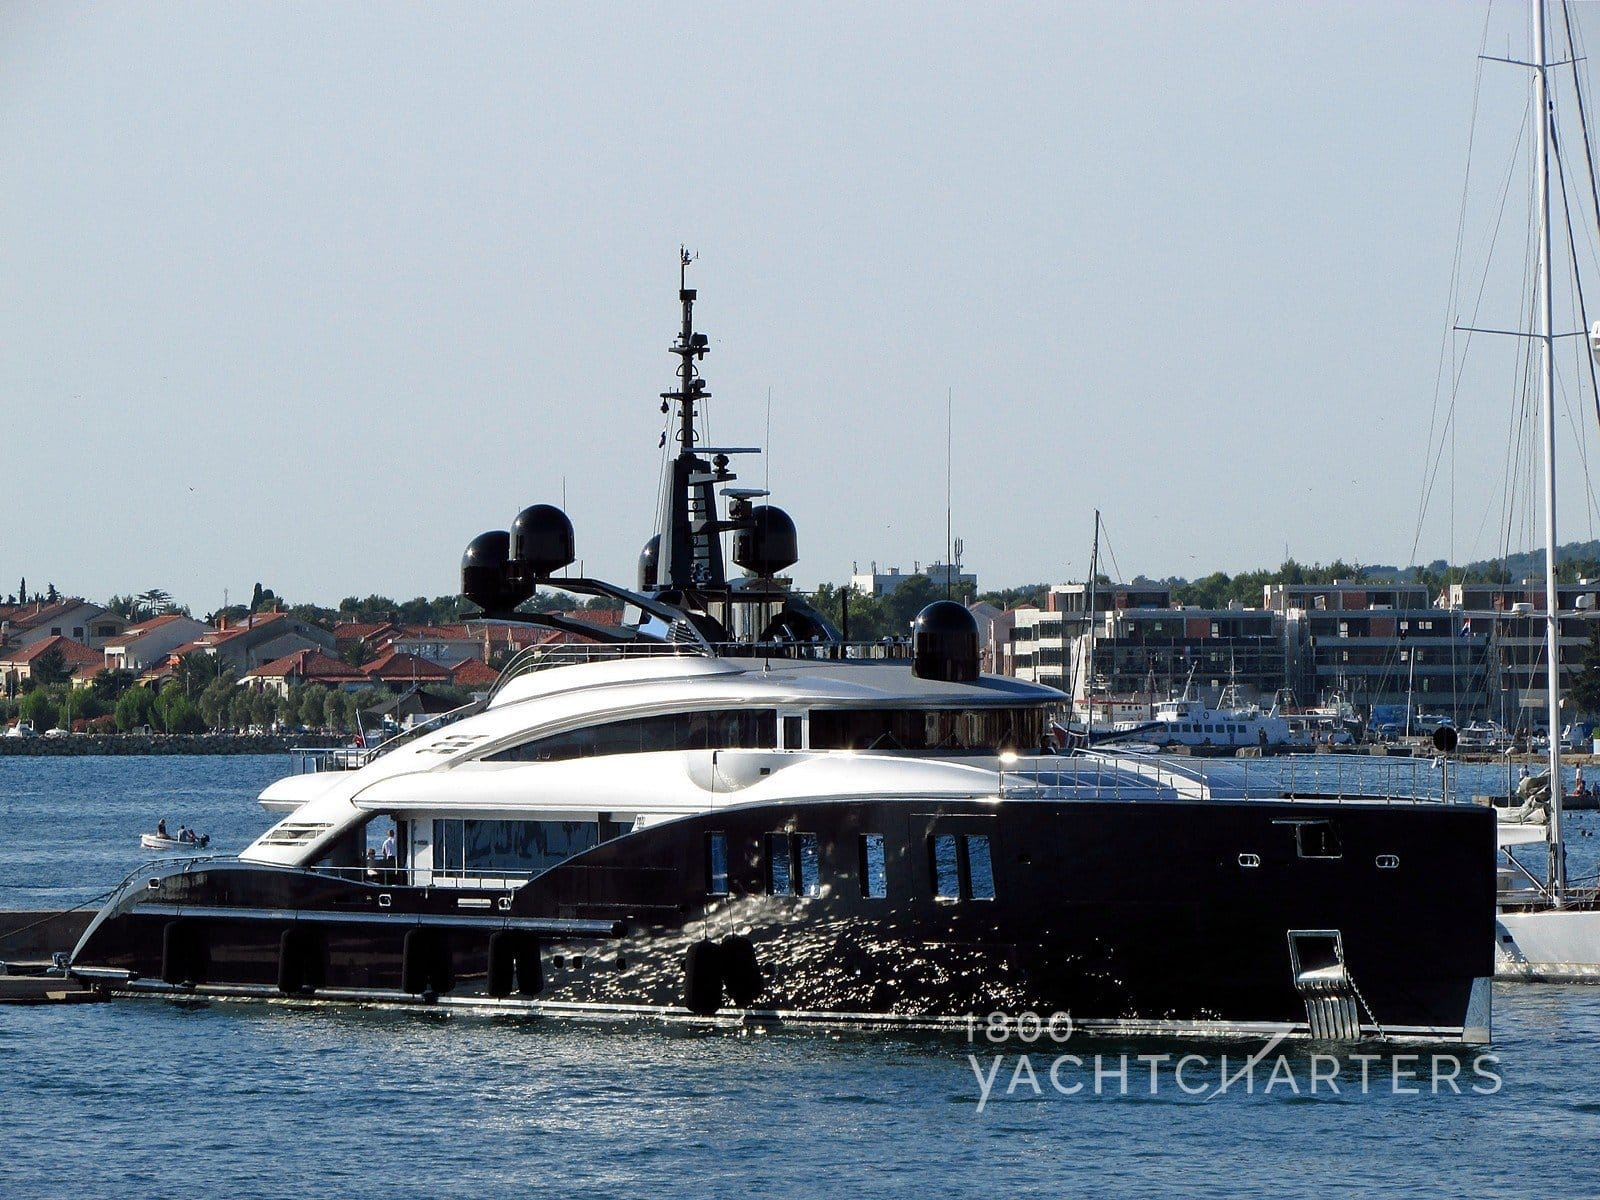 Profile of yacht entering harbor - reflective dark hull brightly shining